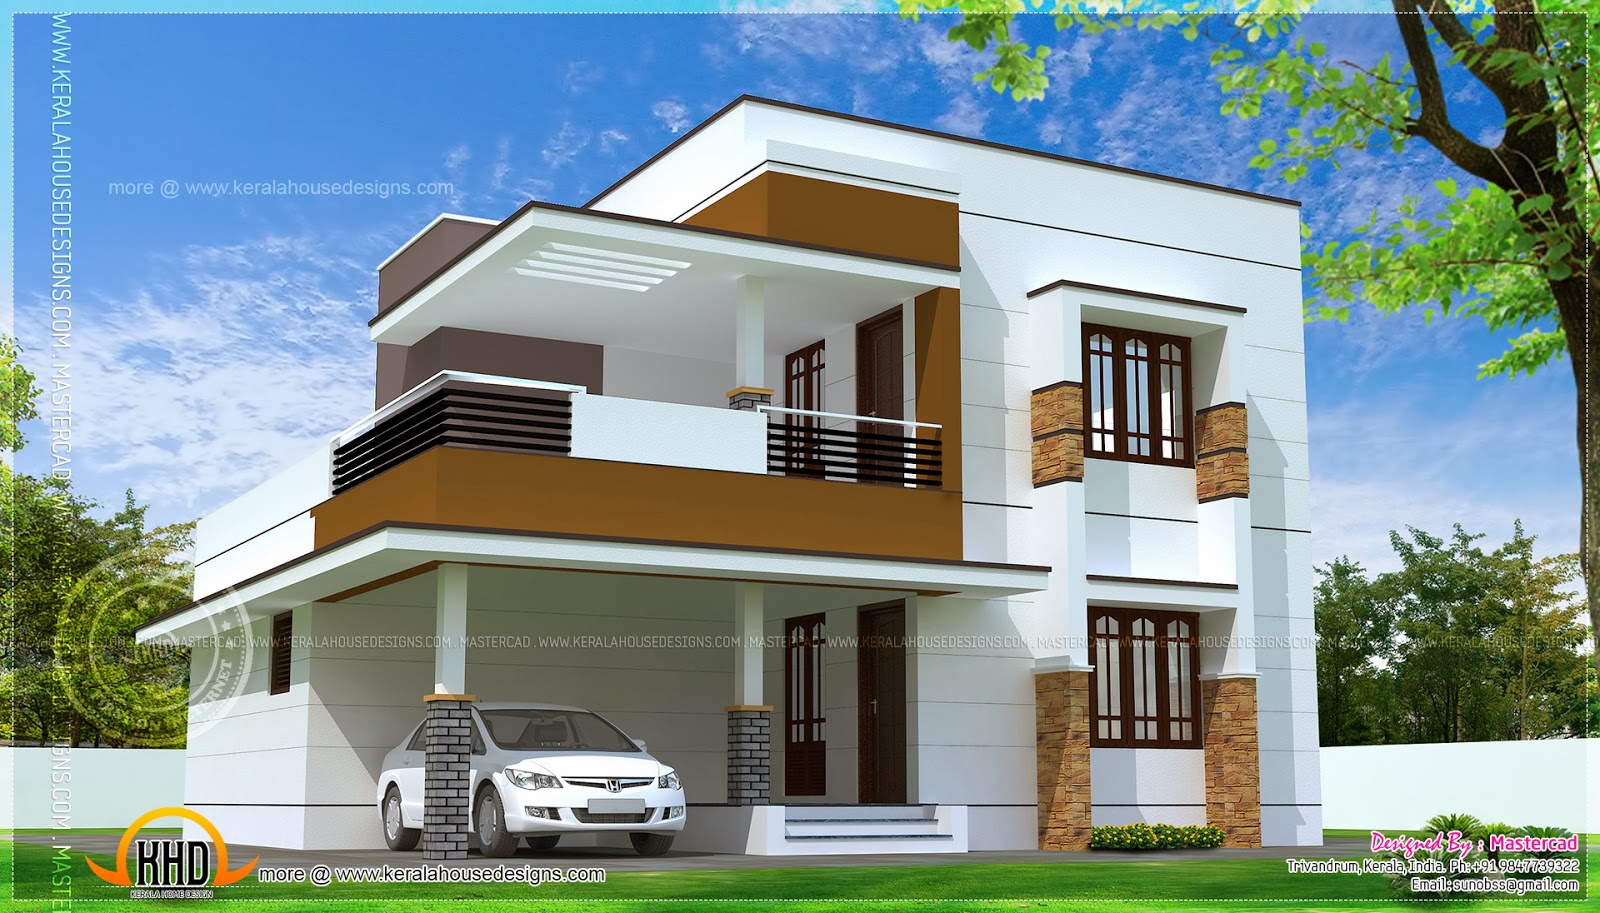 Simple House Design Of November 2013 Kerala Home Design And Floor Plans